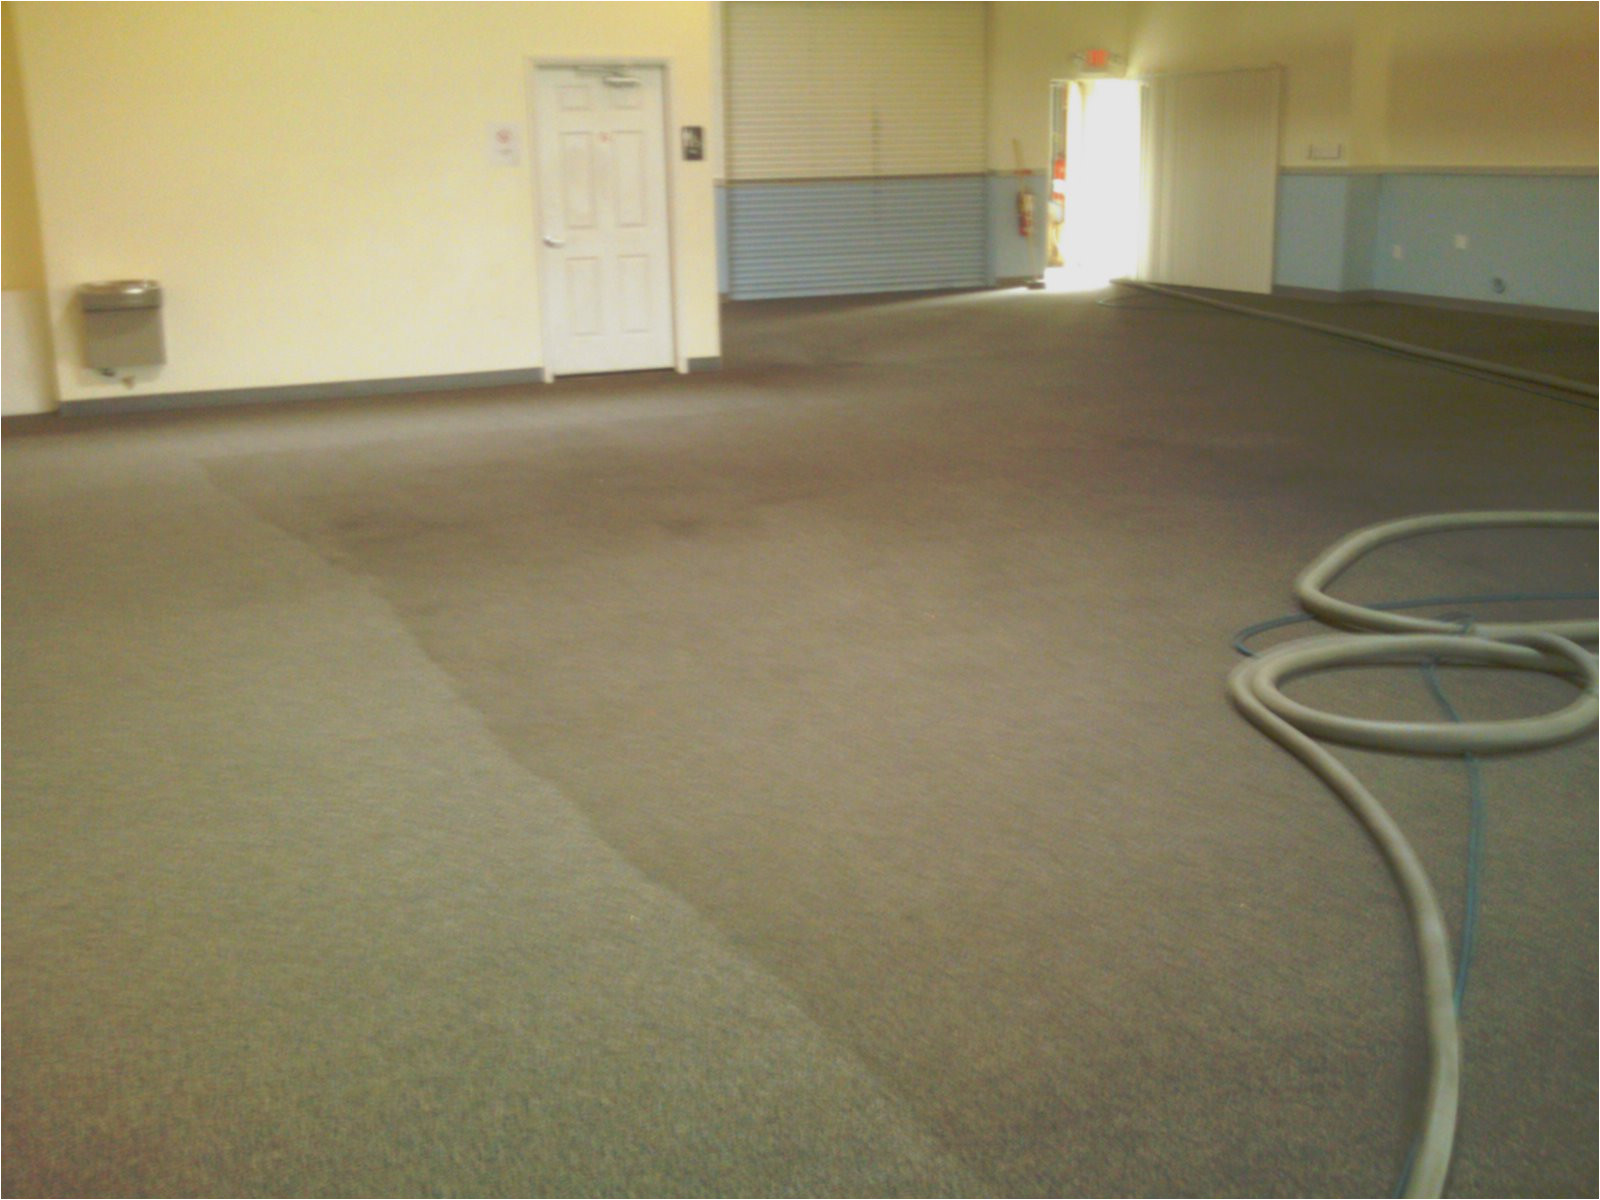 06 carpet cleaning grand rapids 07 got stains o g pro carpet care carpetcleaning june 058